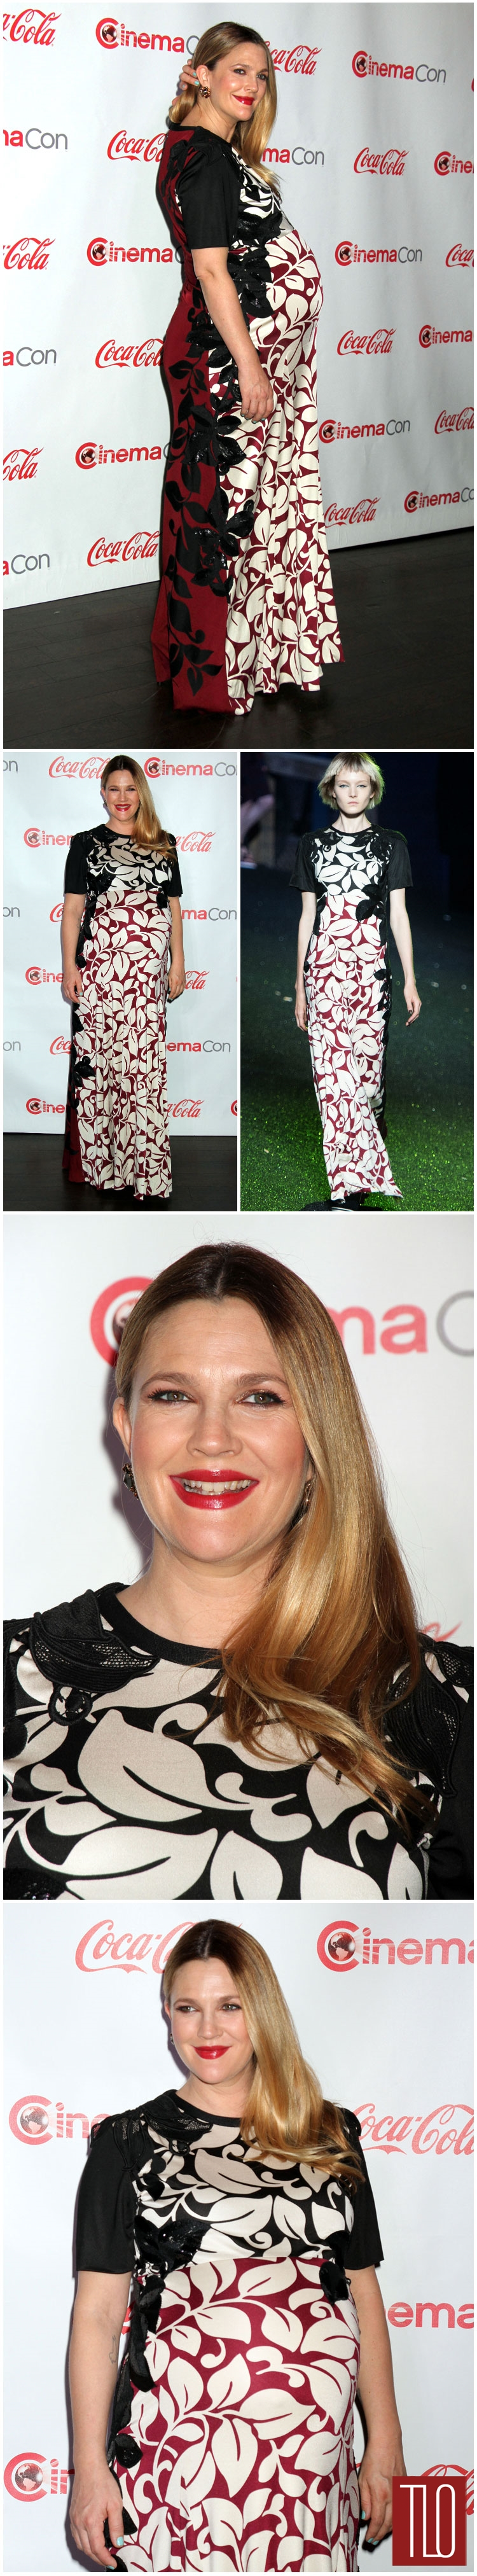 Drew-Barrymore-Marc-Jacobs-CinemaCon-2014-Big-Screen-Achievement-Awards-Tom-Lorenzo-Site-TLO